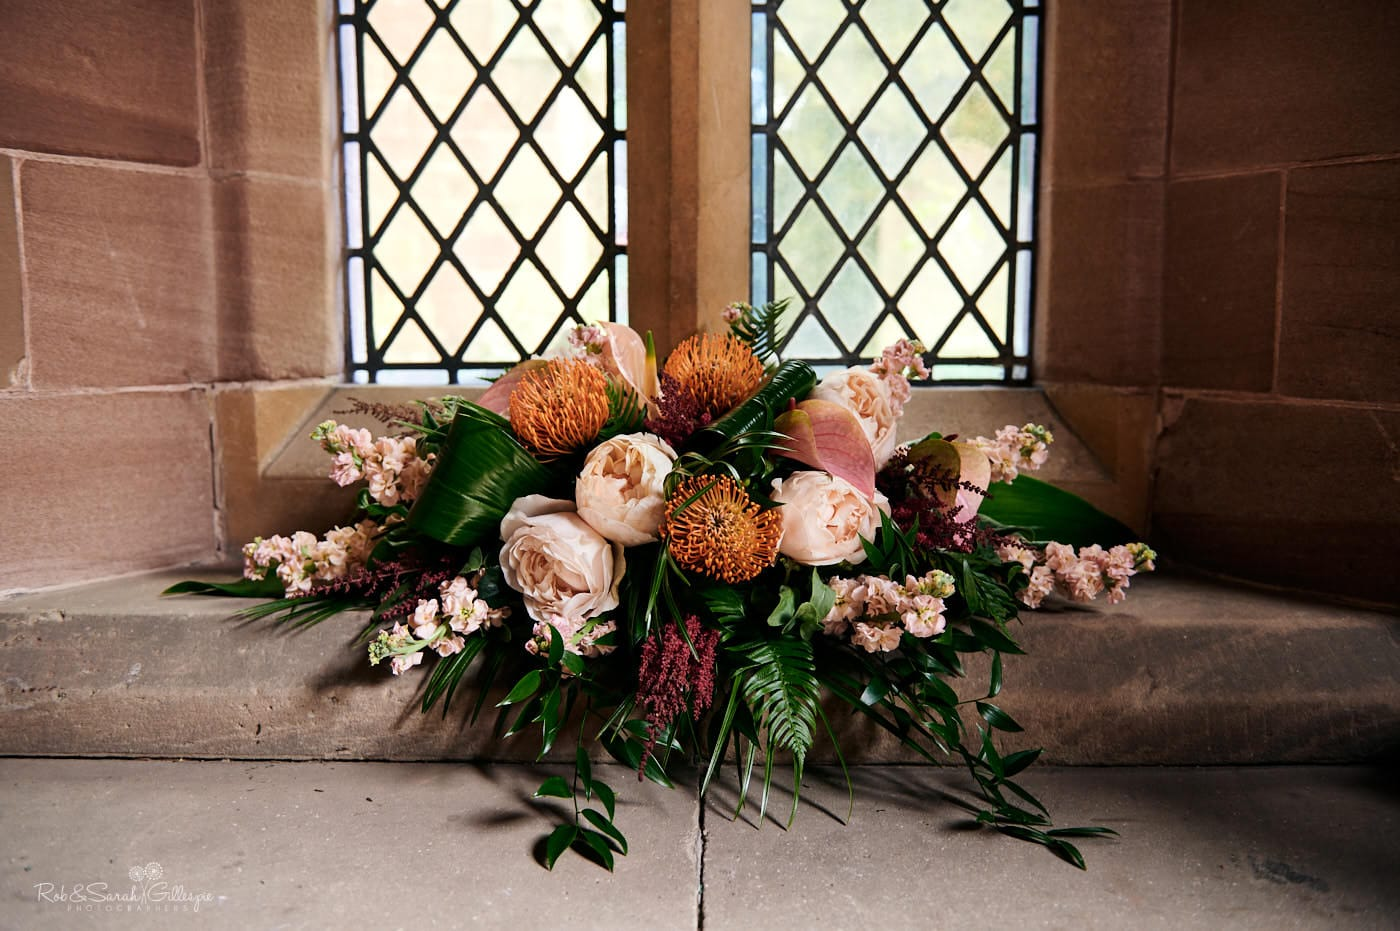 Beautiful wedding flowers on window ledge at church